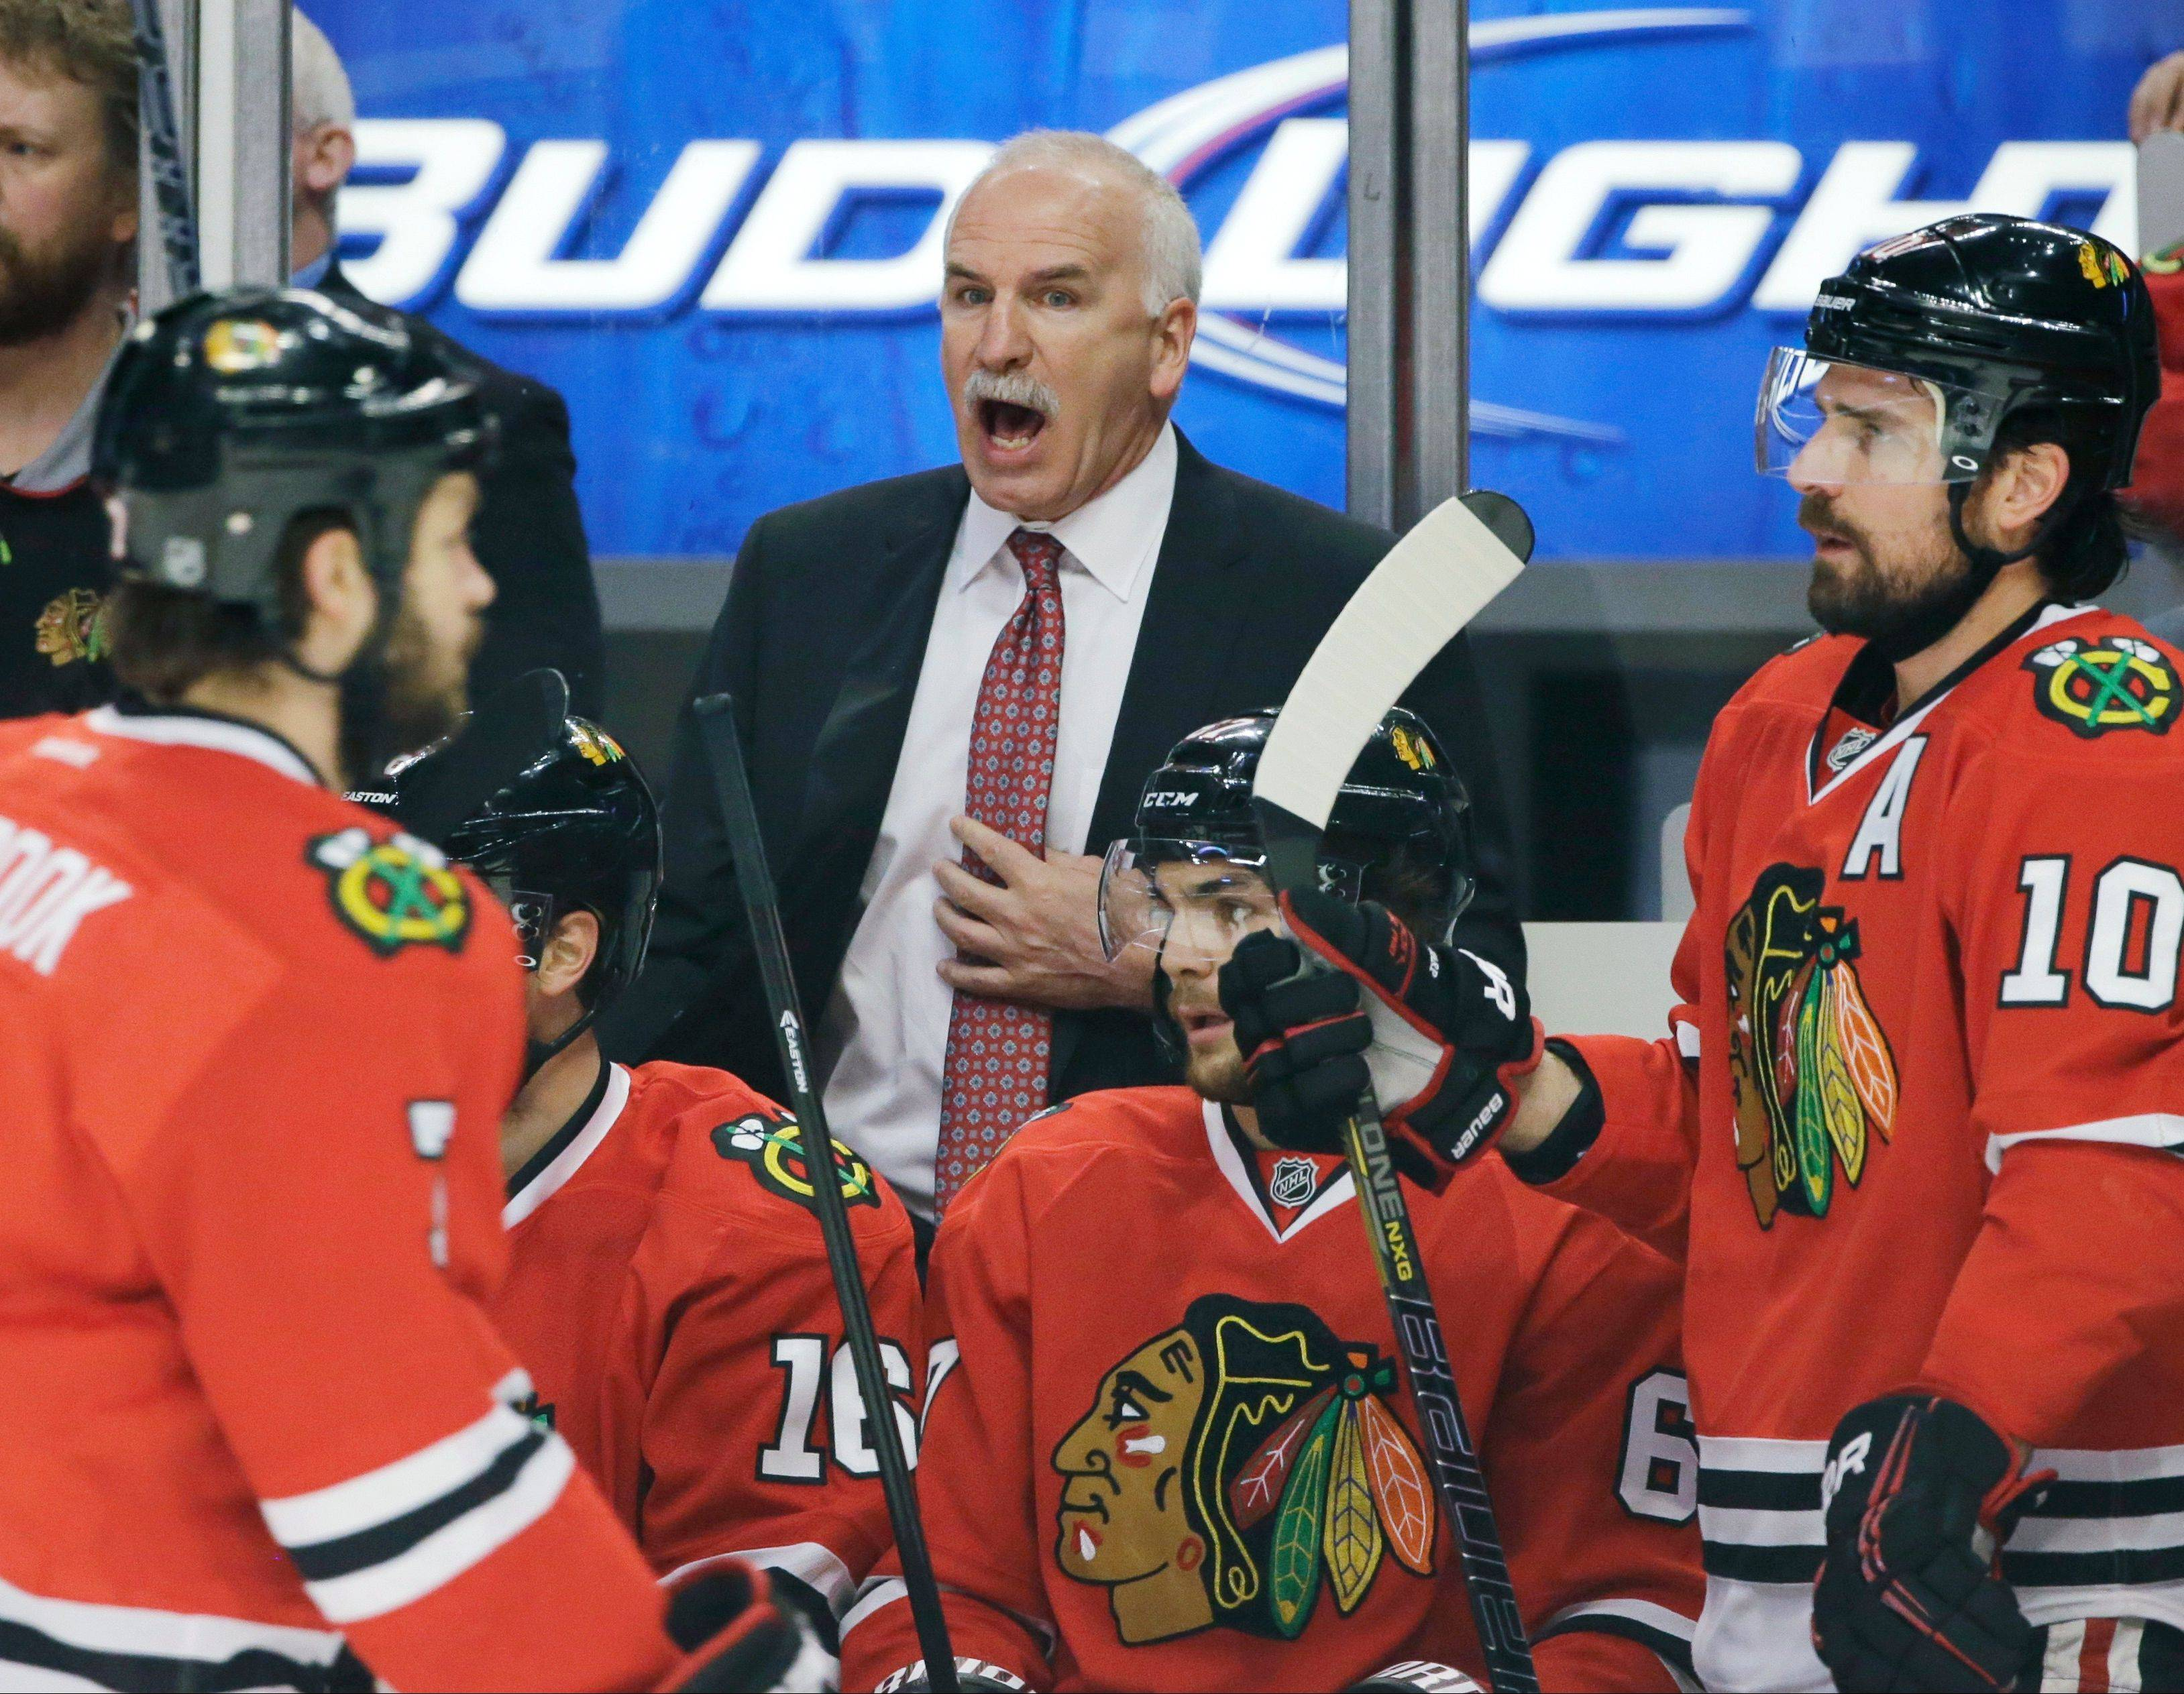 Joel Quenneville has a bit of Vince Lombardi in him, according to Daily Herald columnist Mike Imrem, showing the fortitude to make his players accountable in an era when that's hardly ever easy.